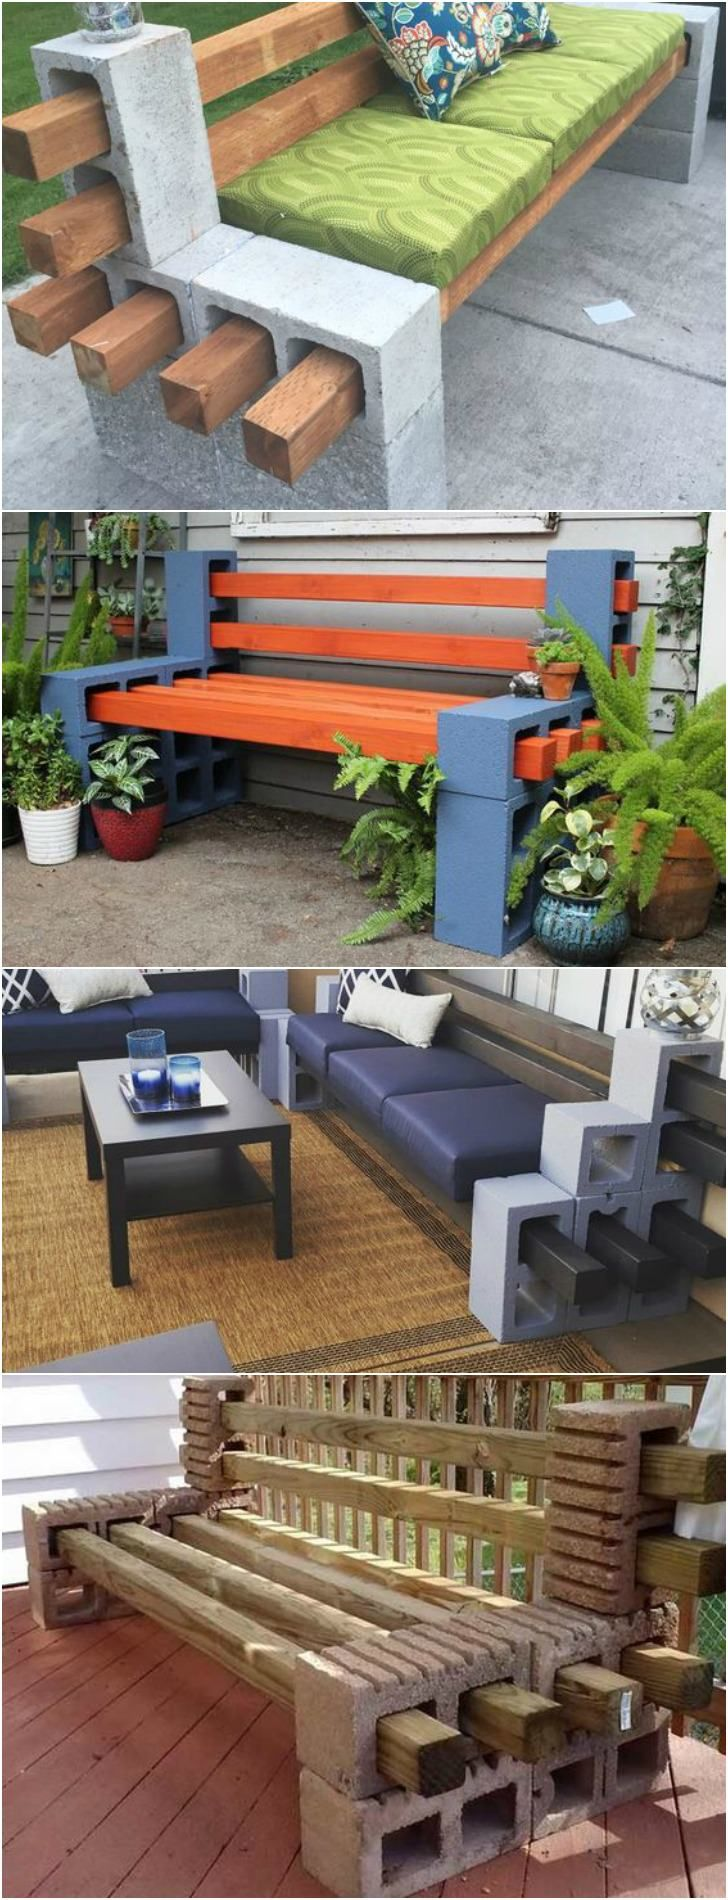 Homemade outdoor furniture ideas - How To Make A Bench From Cinder Blocks 10 Amazing Ideas To Inspire You